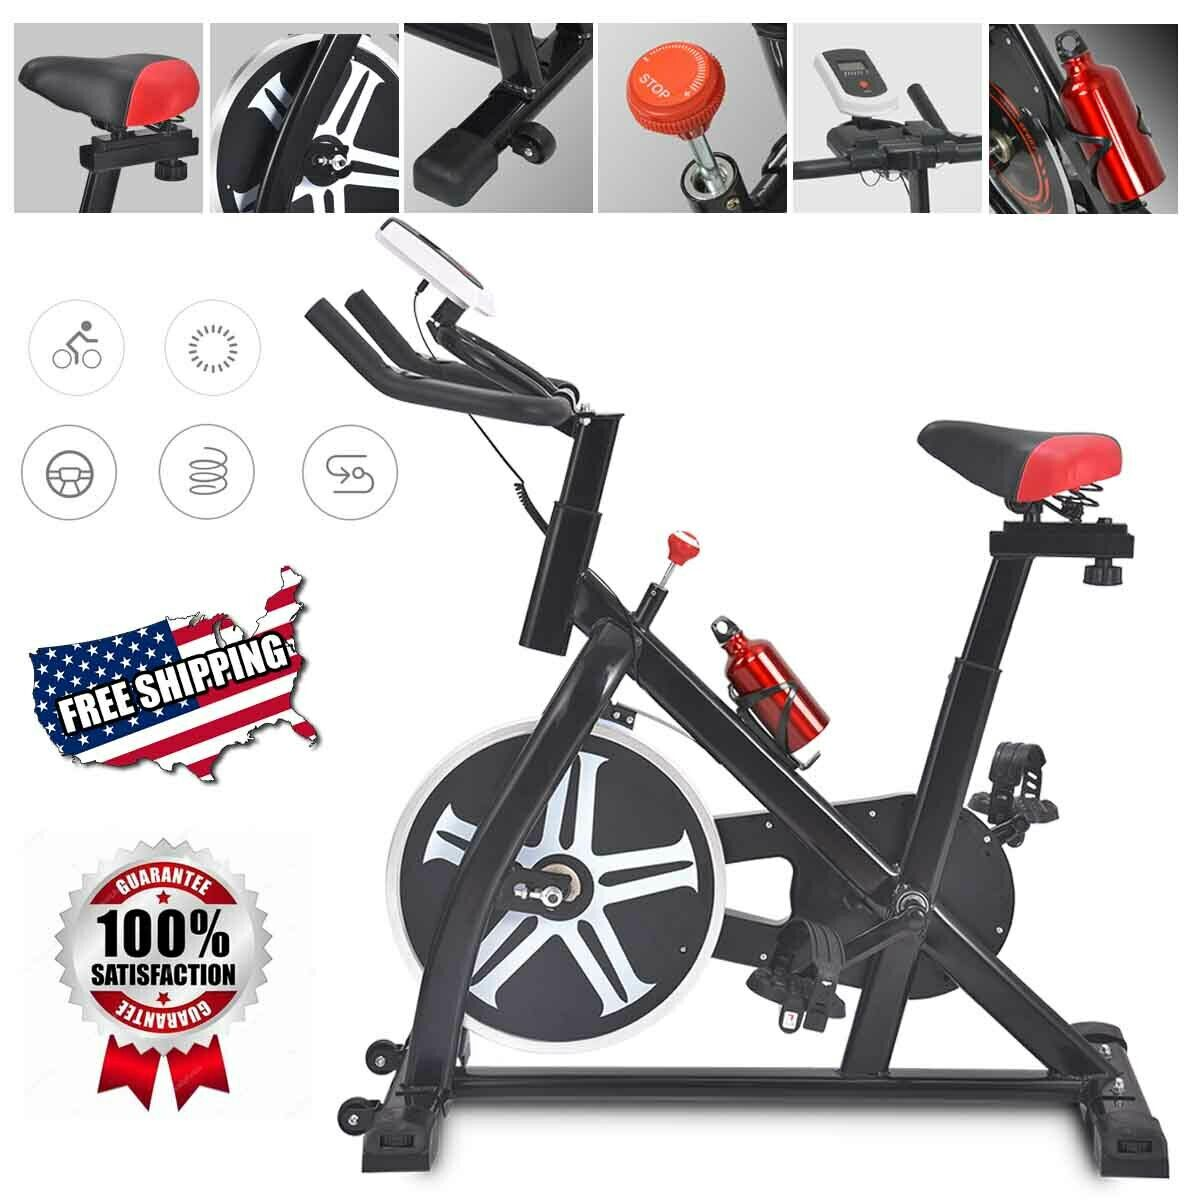 Pro Stationary Exercise Bike Bicycle Trainer Fitness Cardio